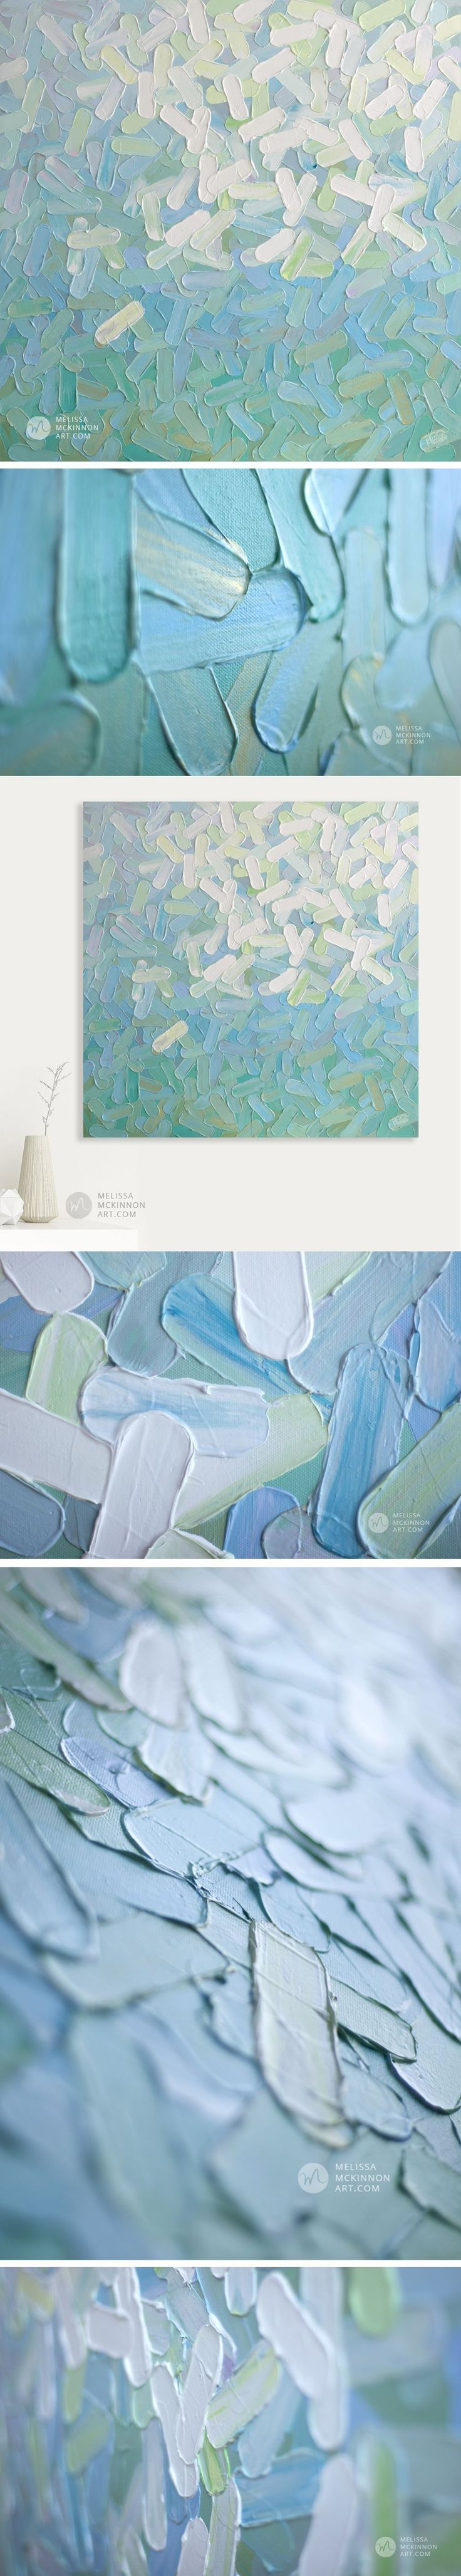 """Soothing Aqua, Turquoise, Blue White Abstract Painting by Contemporary Abstract Artist Melissa McKinnon """"Daydream"""" 36″x36″ 